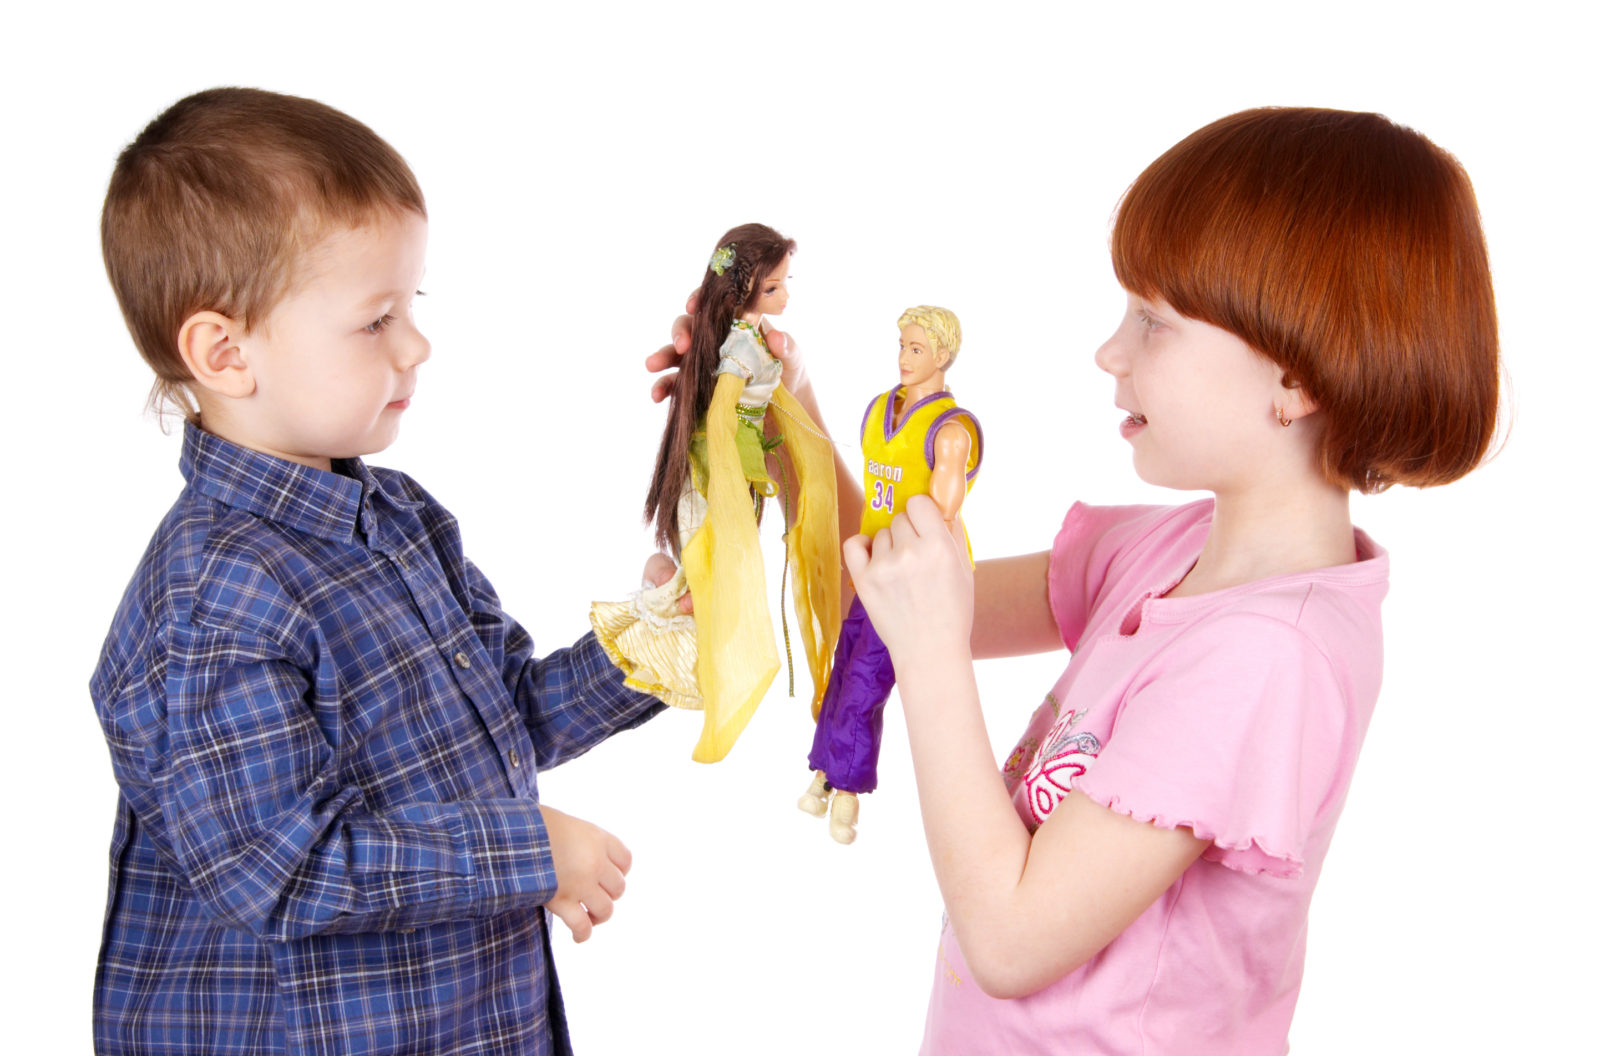 why boys dont play with dolls Start studying why boys don't play with dolls learn vocabulary, terms, and more with flashcards, games, and other study tools.